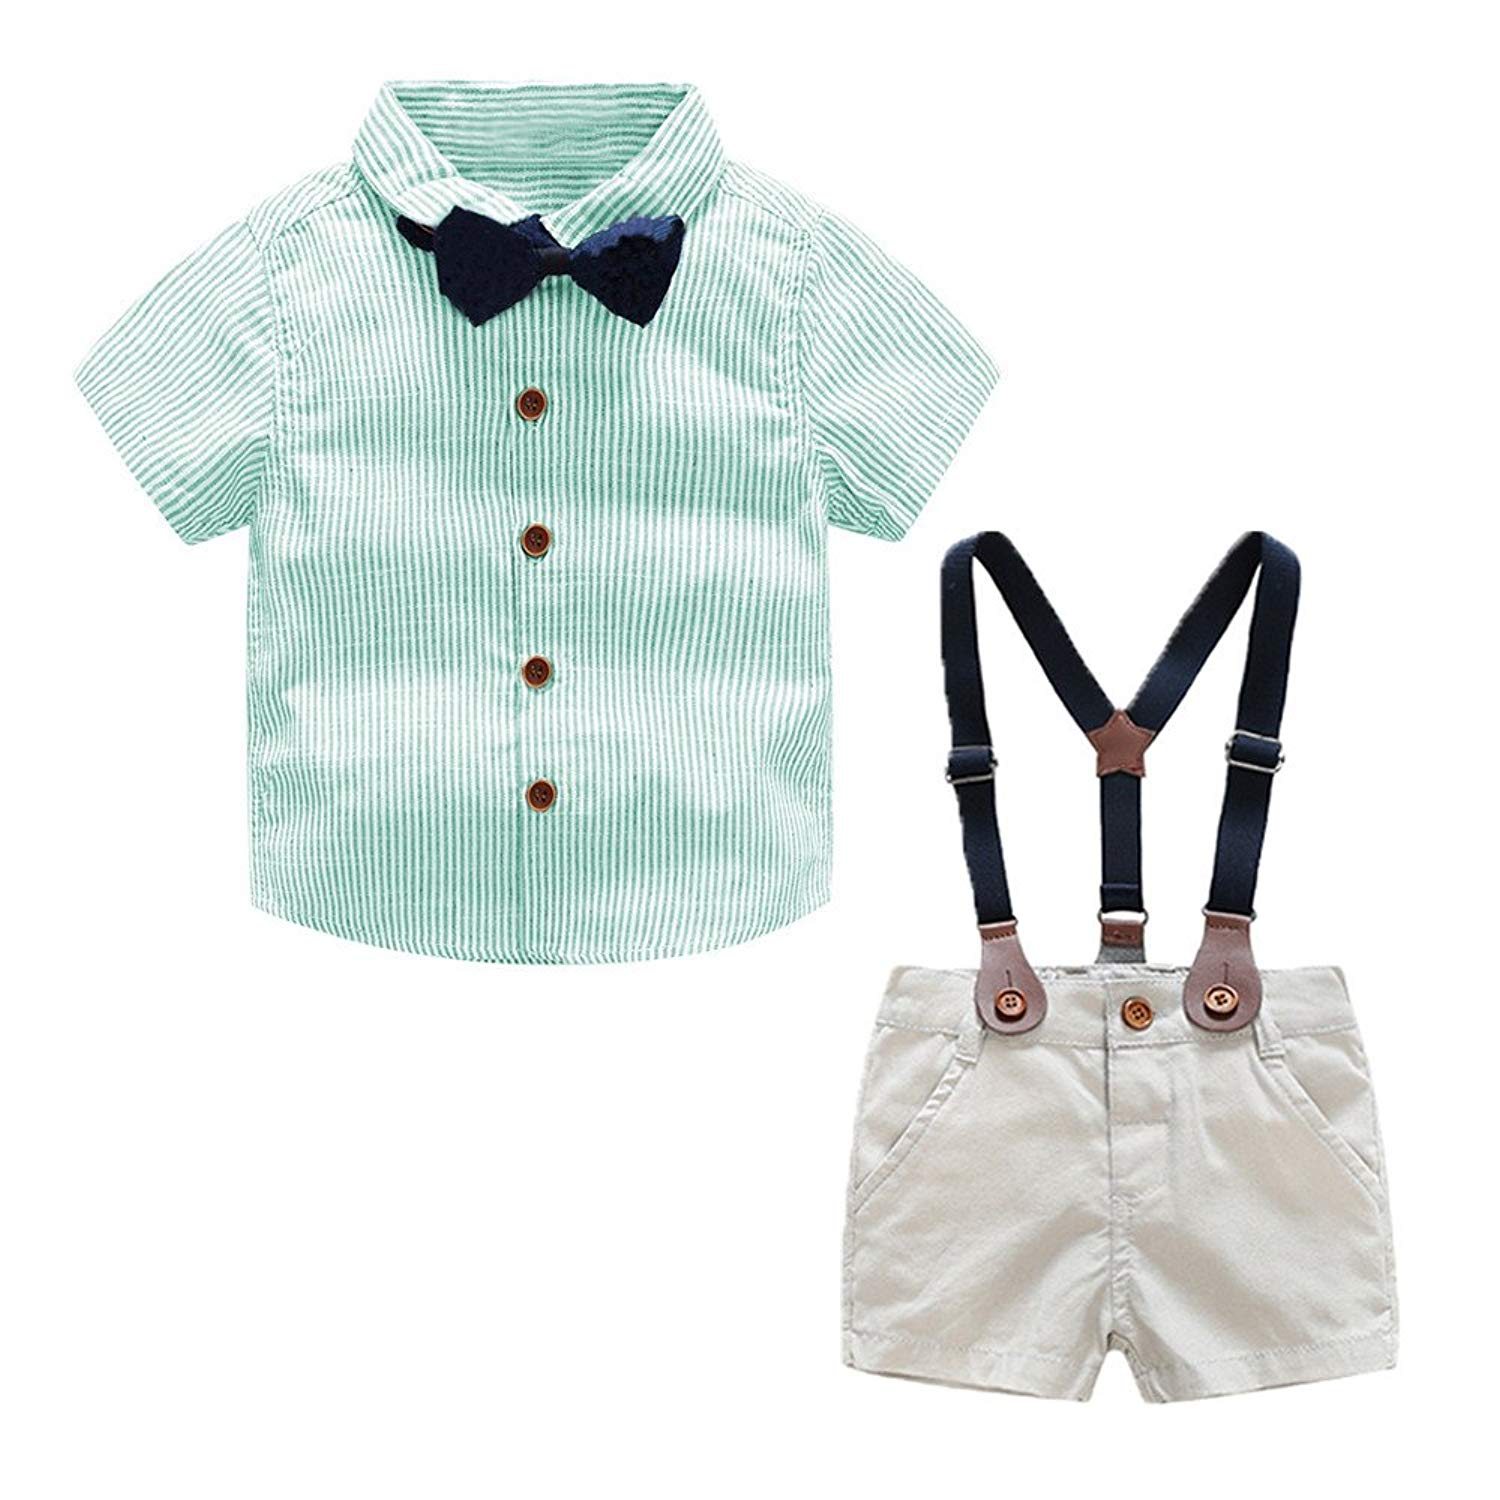 Moyikiss Studio Toddler Baby Boys Gentleman Outfits Short Sleeve Striped Shirt+Straps Shorts+Bow Tie 3Pcs